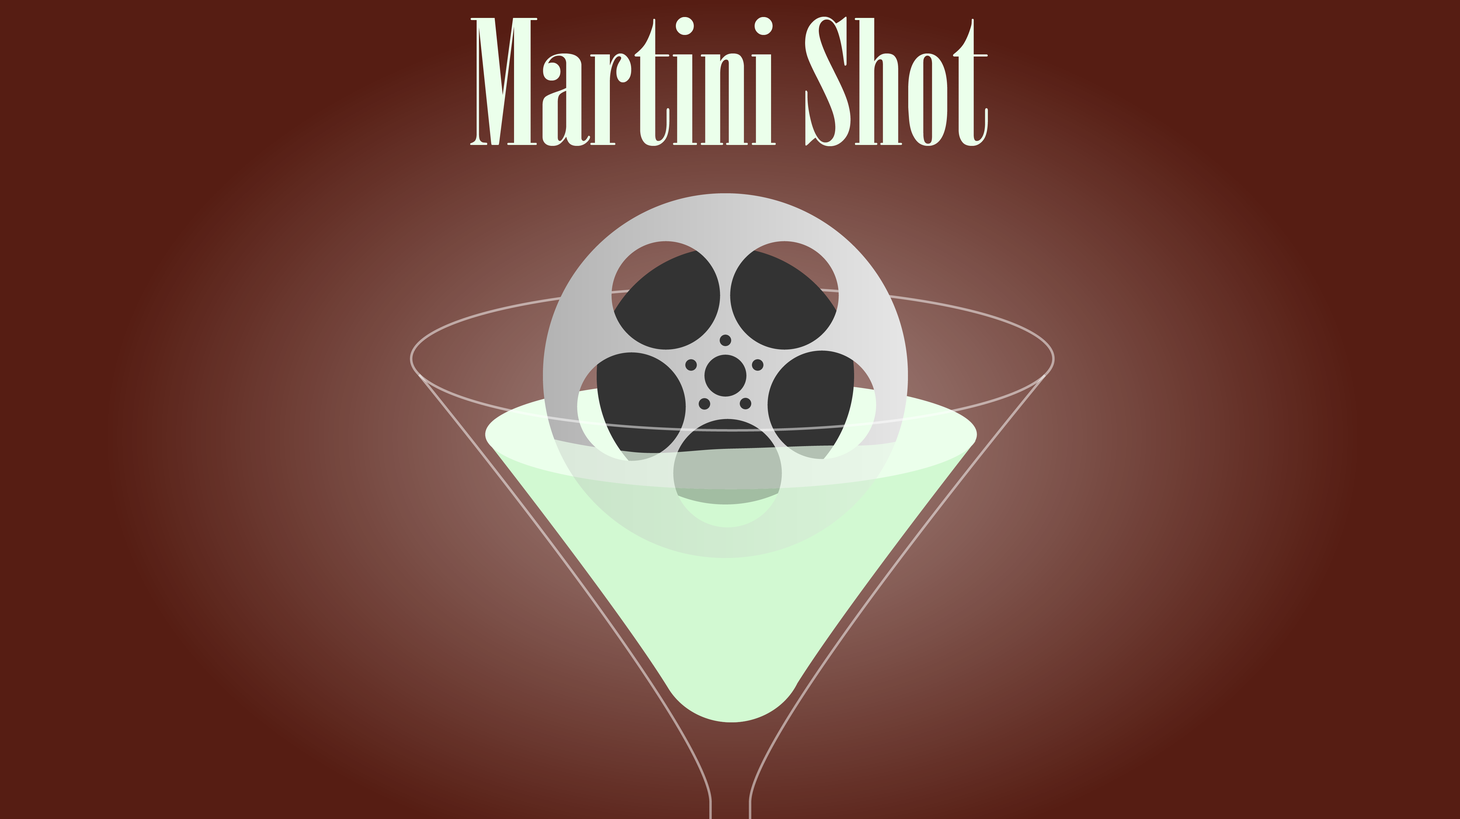 This is Rob Long and on today's Martini Shot I remember a few weeks ago, when videos of unidentified aerial phenomena surfaced, and the Navy said, yeah, those were UFOs, and then we all went Huh and moved on, instead of freaking out like every…